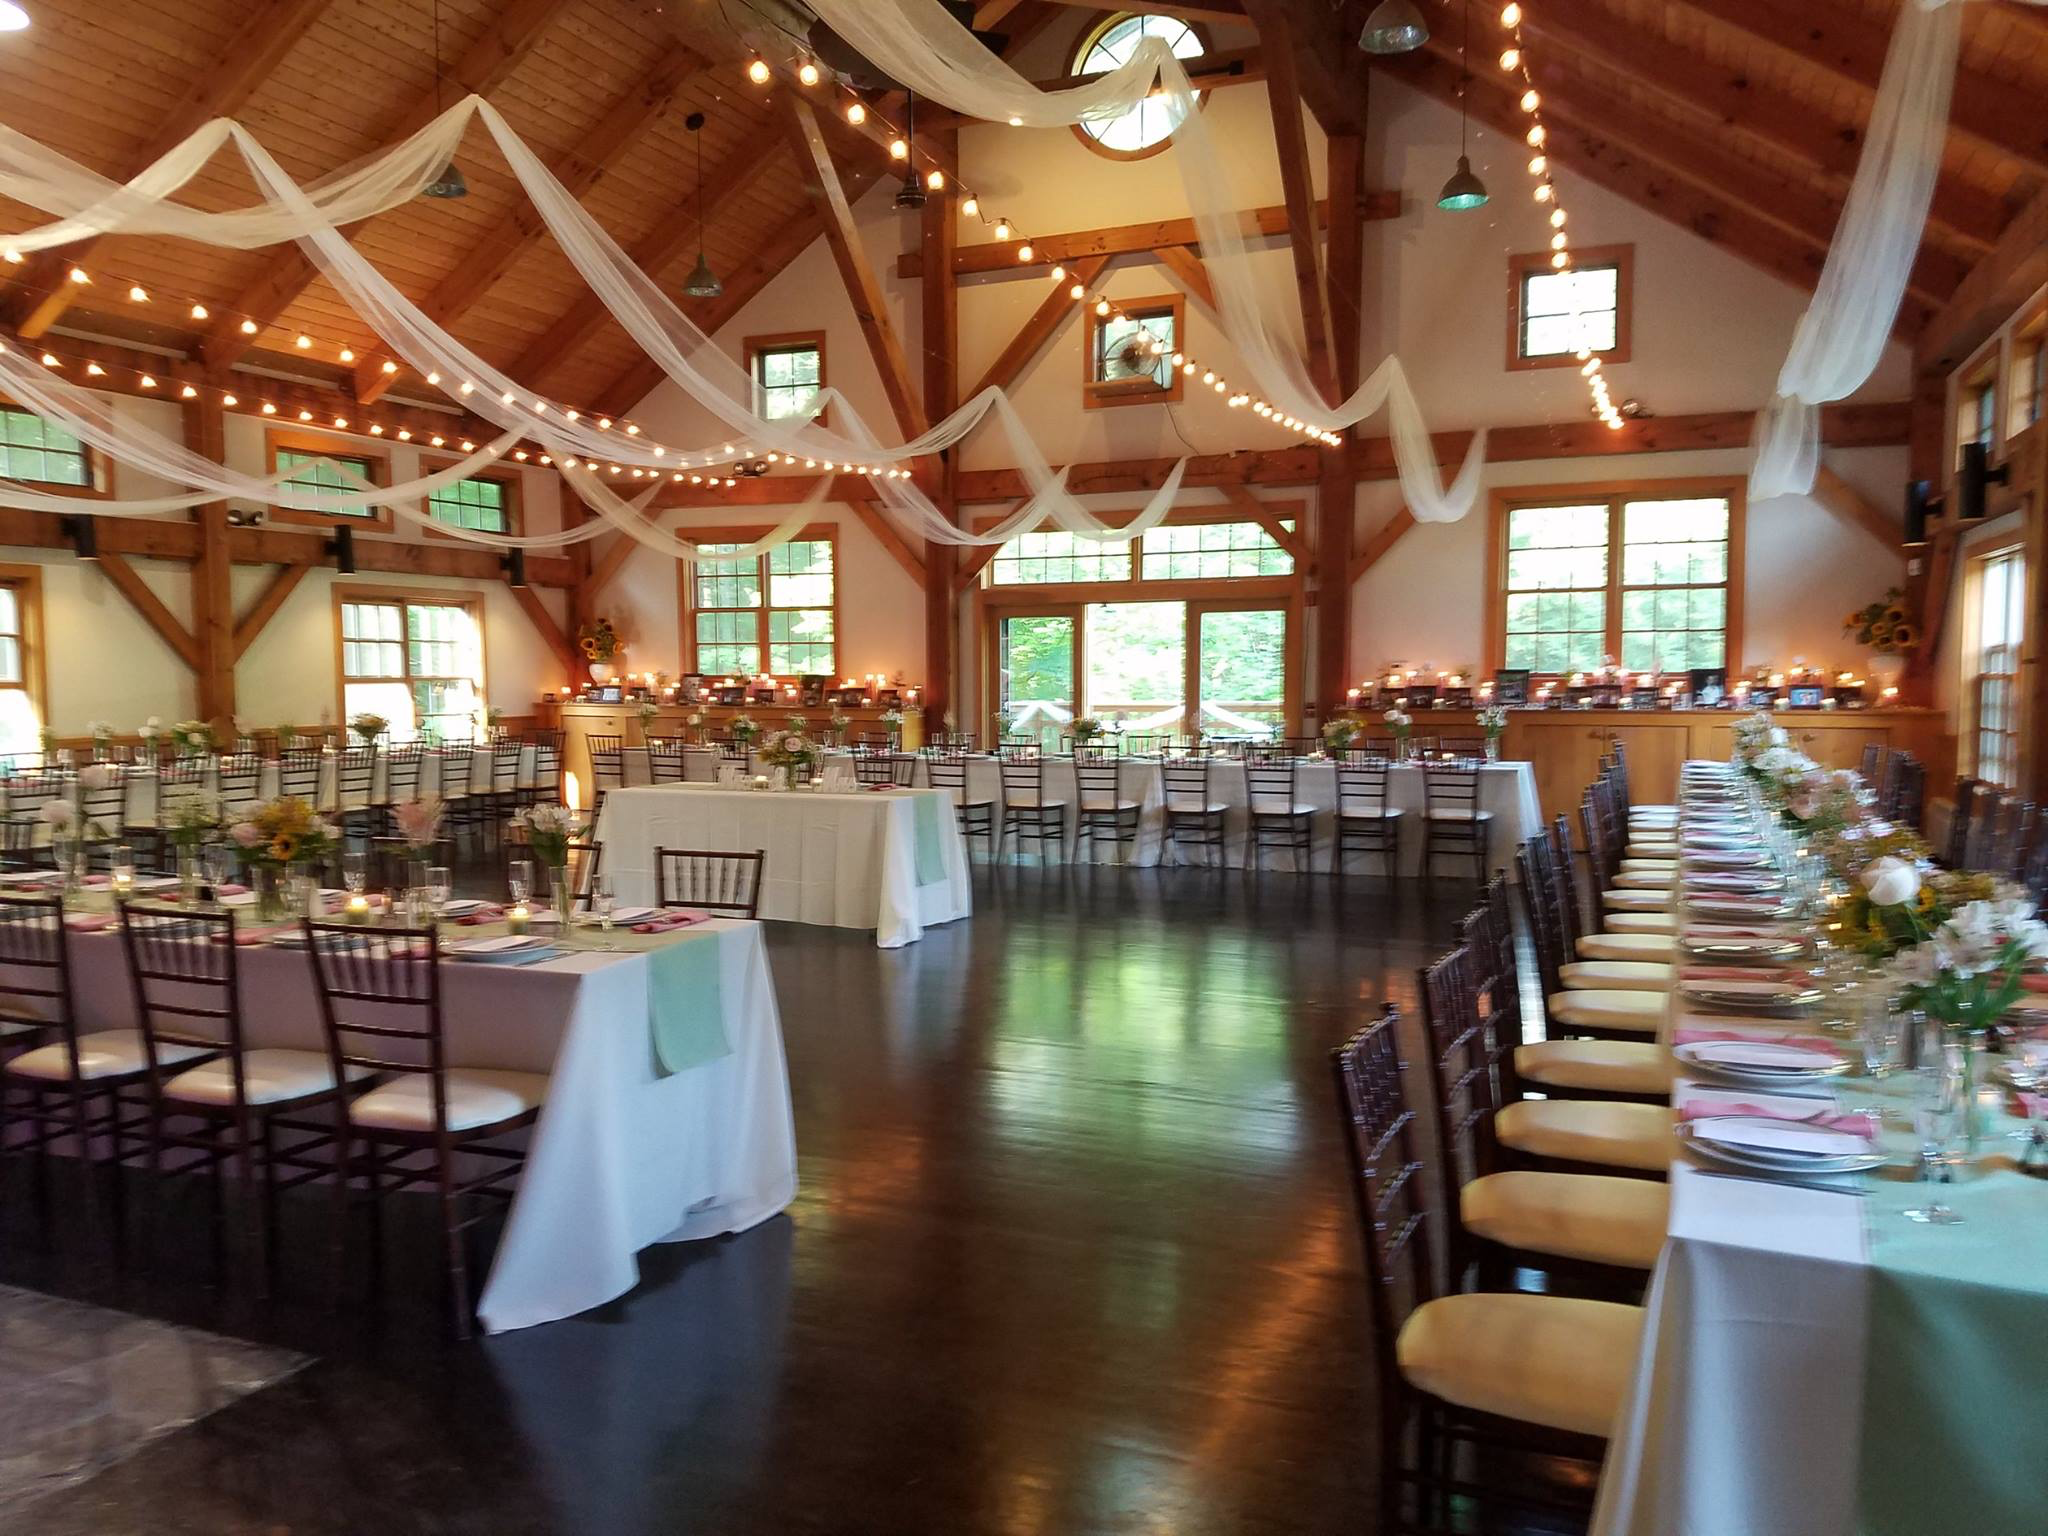 Stonewall Farms Wedding I Can T Wait To Get In There Next Oct 2019 Stonewall Farm Table Decorations Vintage Rentals